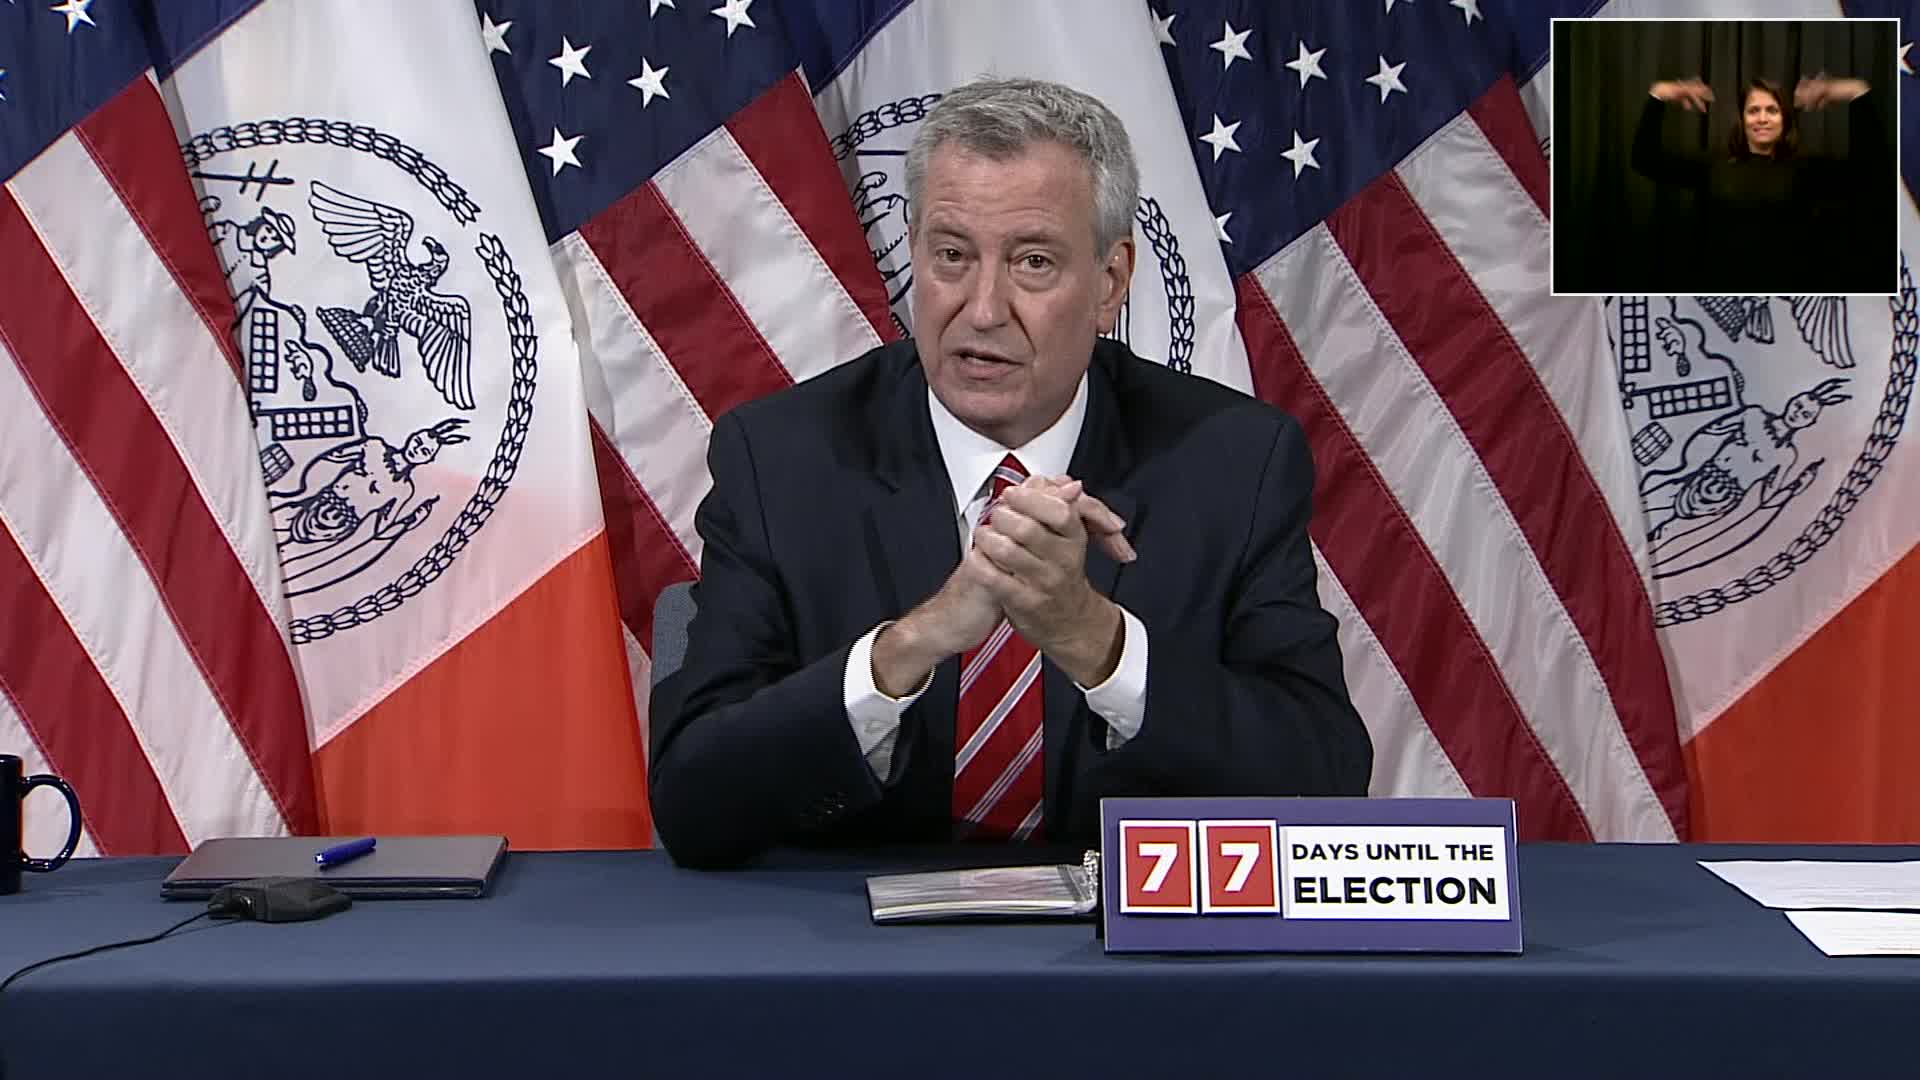 New York City Mayor Bill de Blasio speaks during a press conference in New York City on August 18.